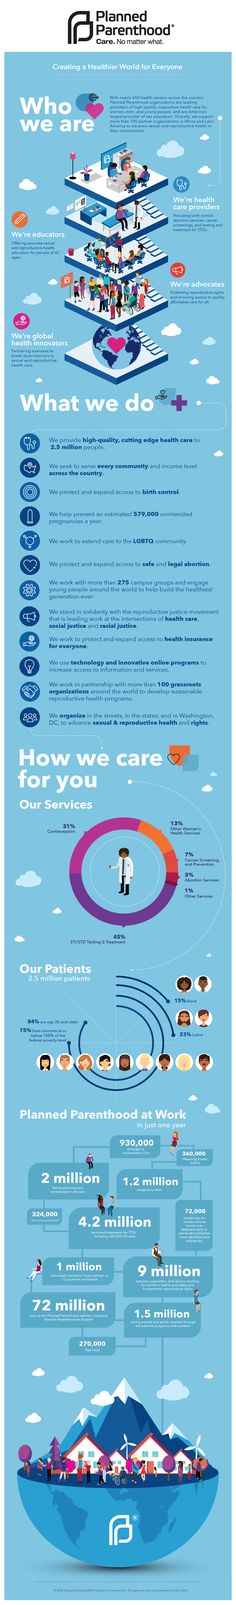 4762b88eea5d Planned Parenthood Infographic Health Education